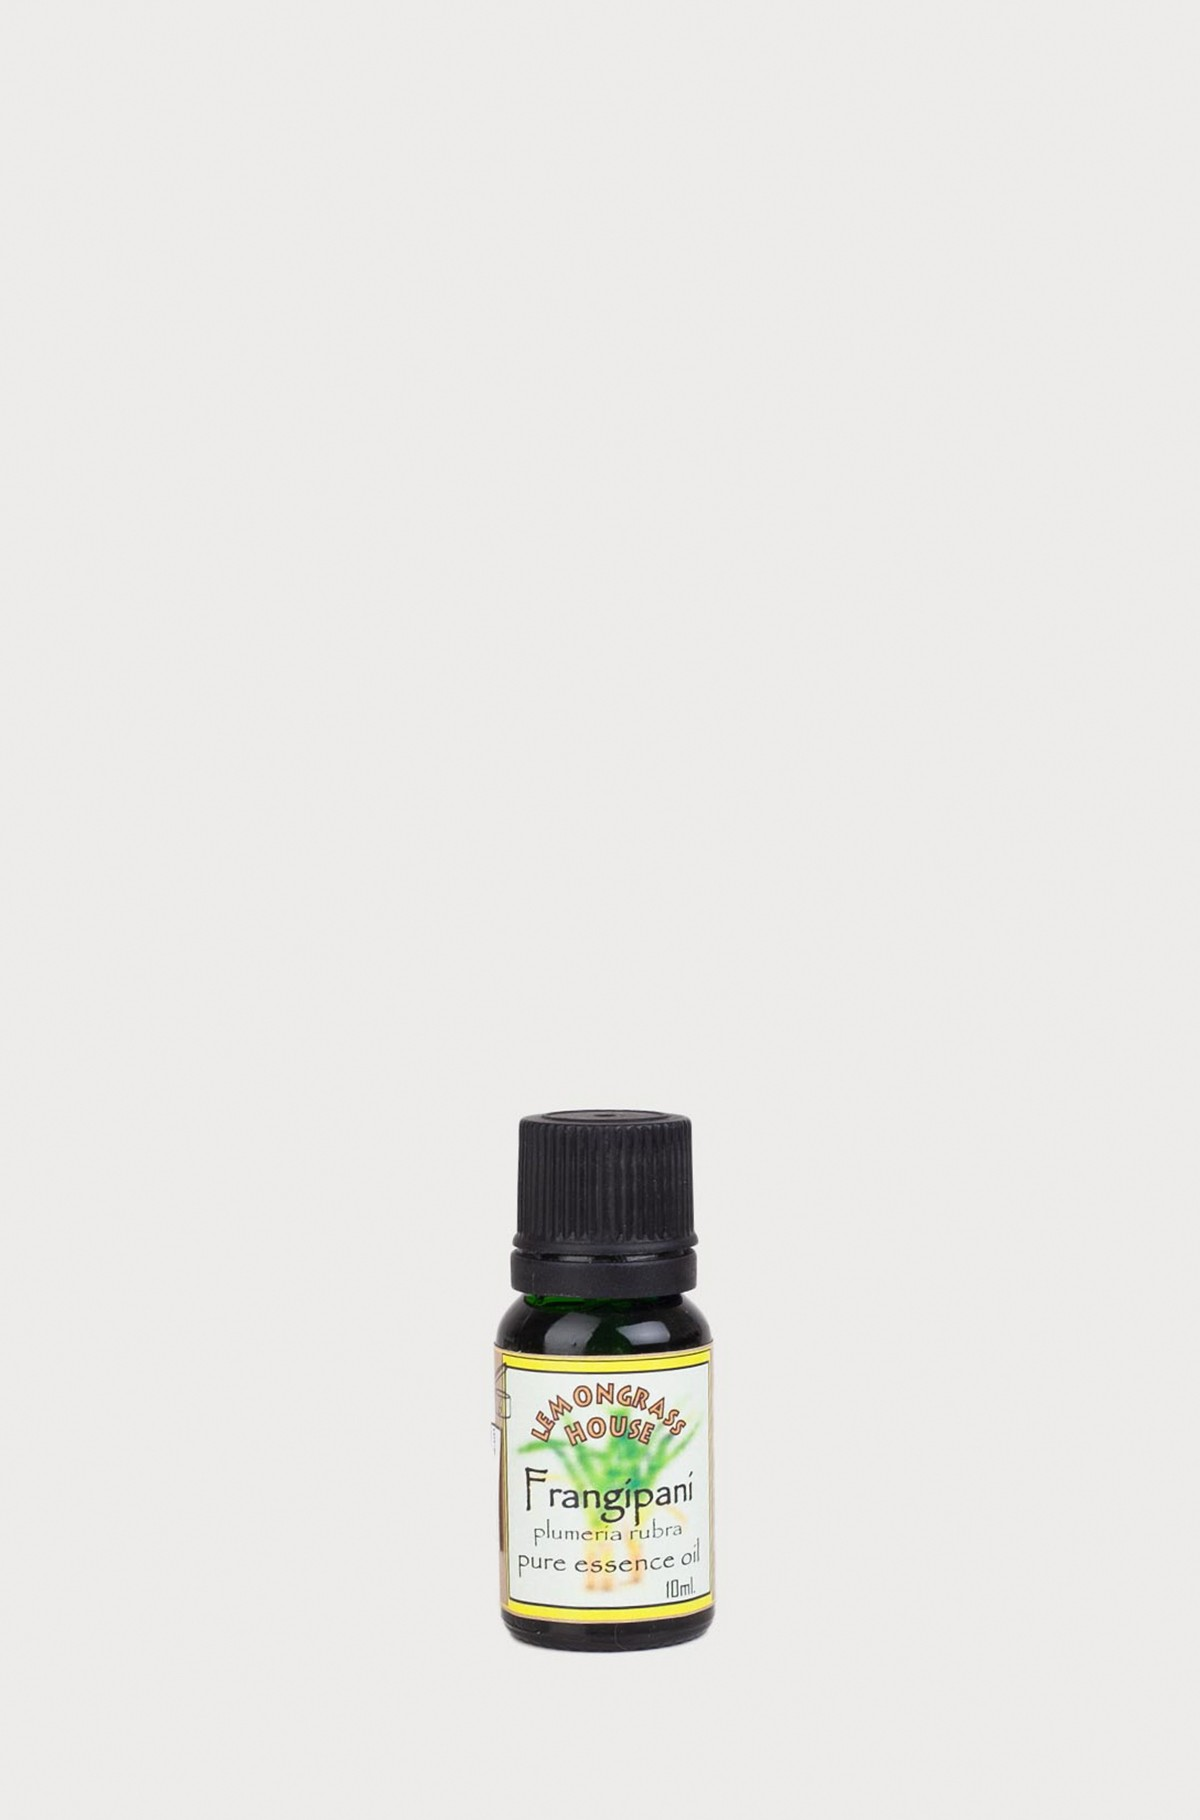 Eeterlik õli Frangipani 10ml-full-1